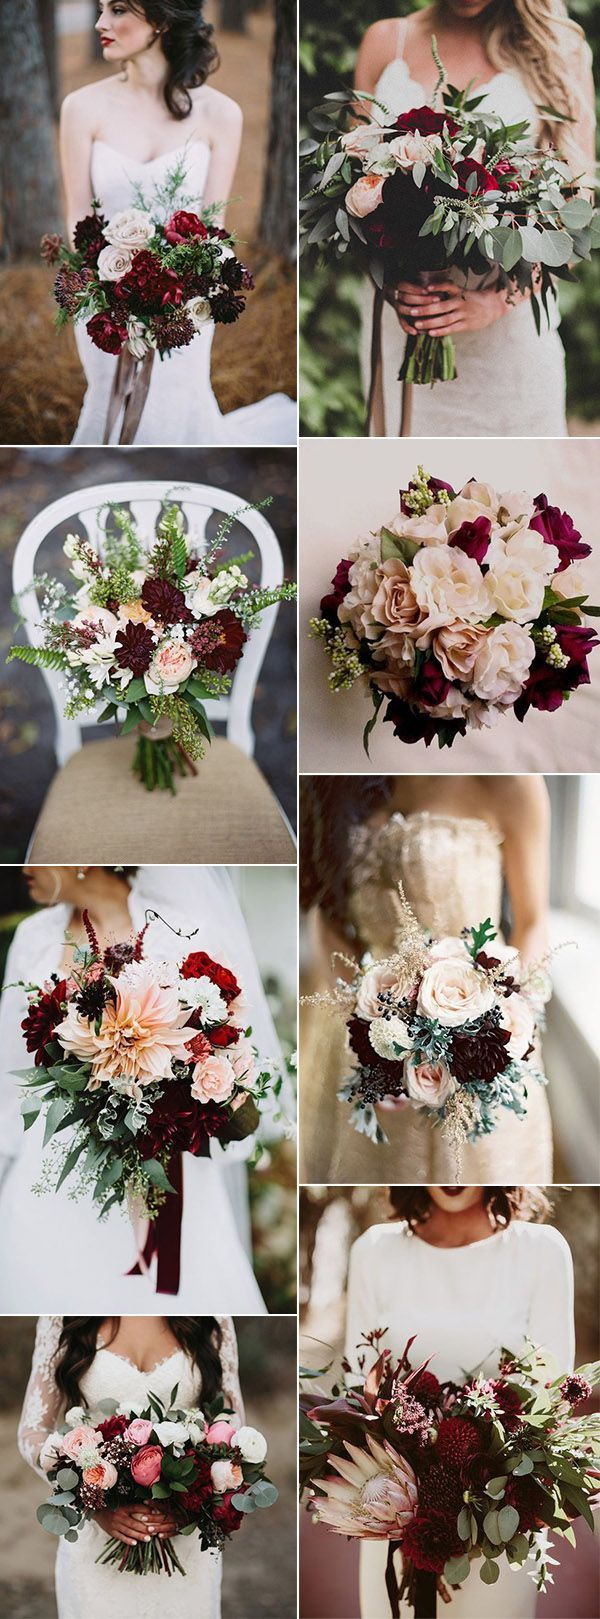 stunning burgundy bridal flower bouquets for all seasons